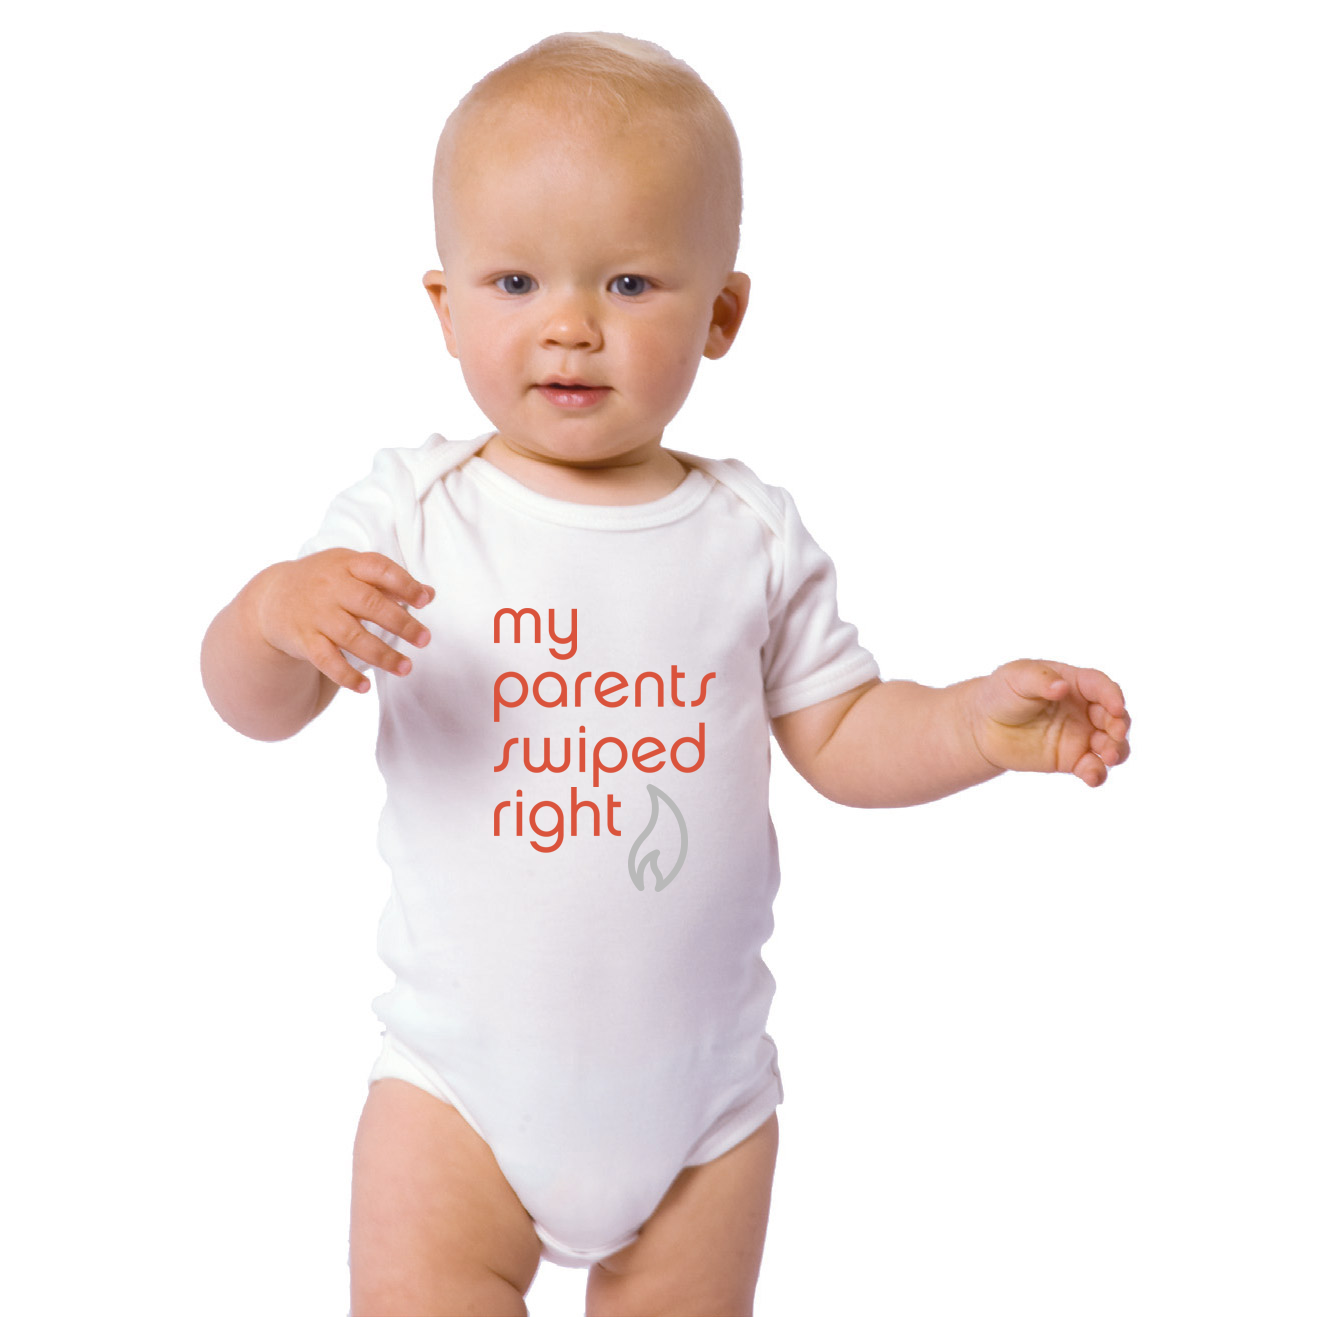 tinder baby This Baby Onesie Is Literally The Best Thing Ever